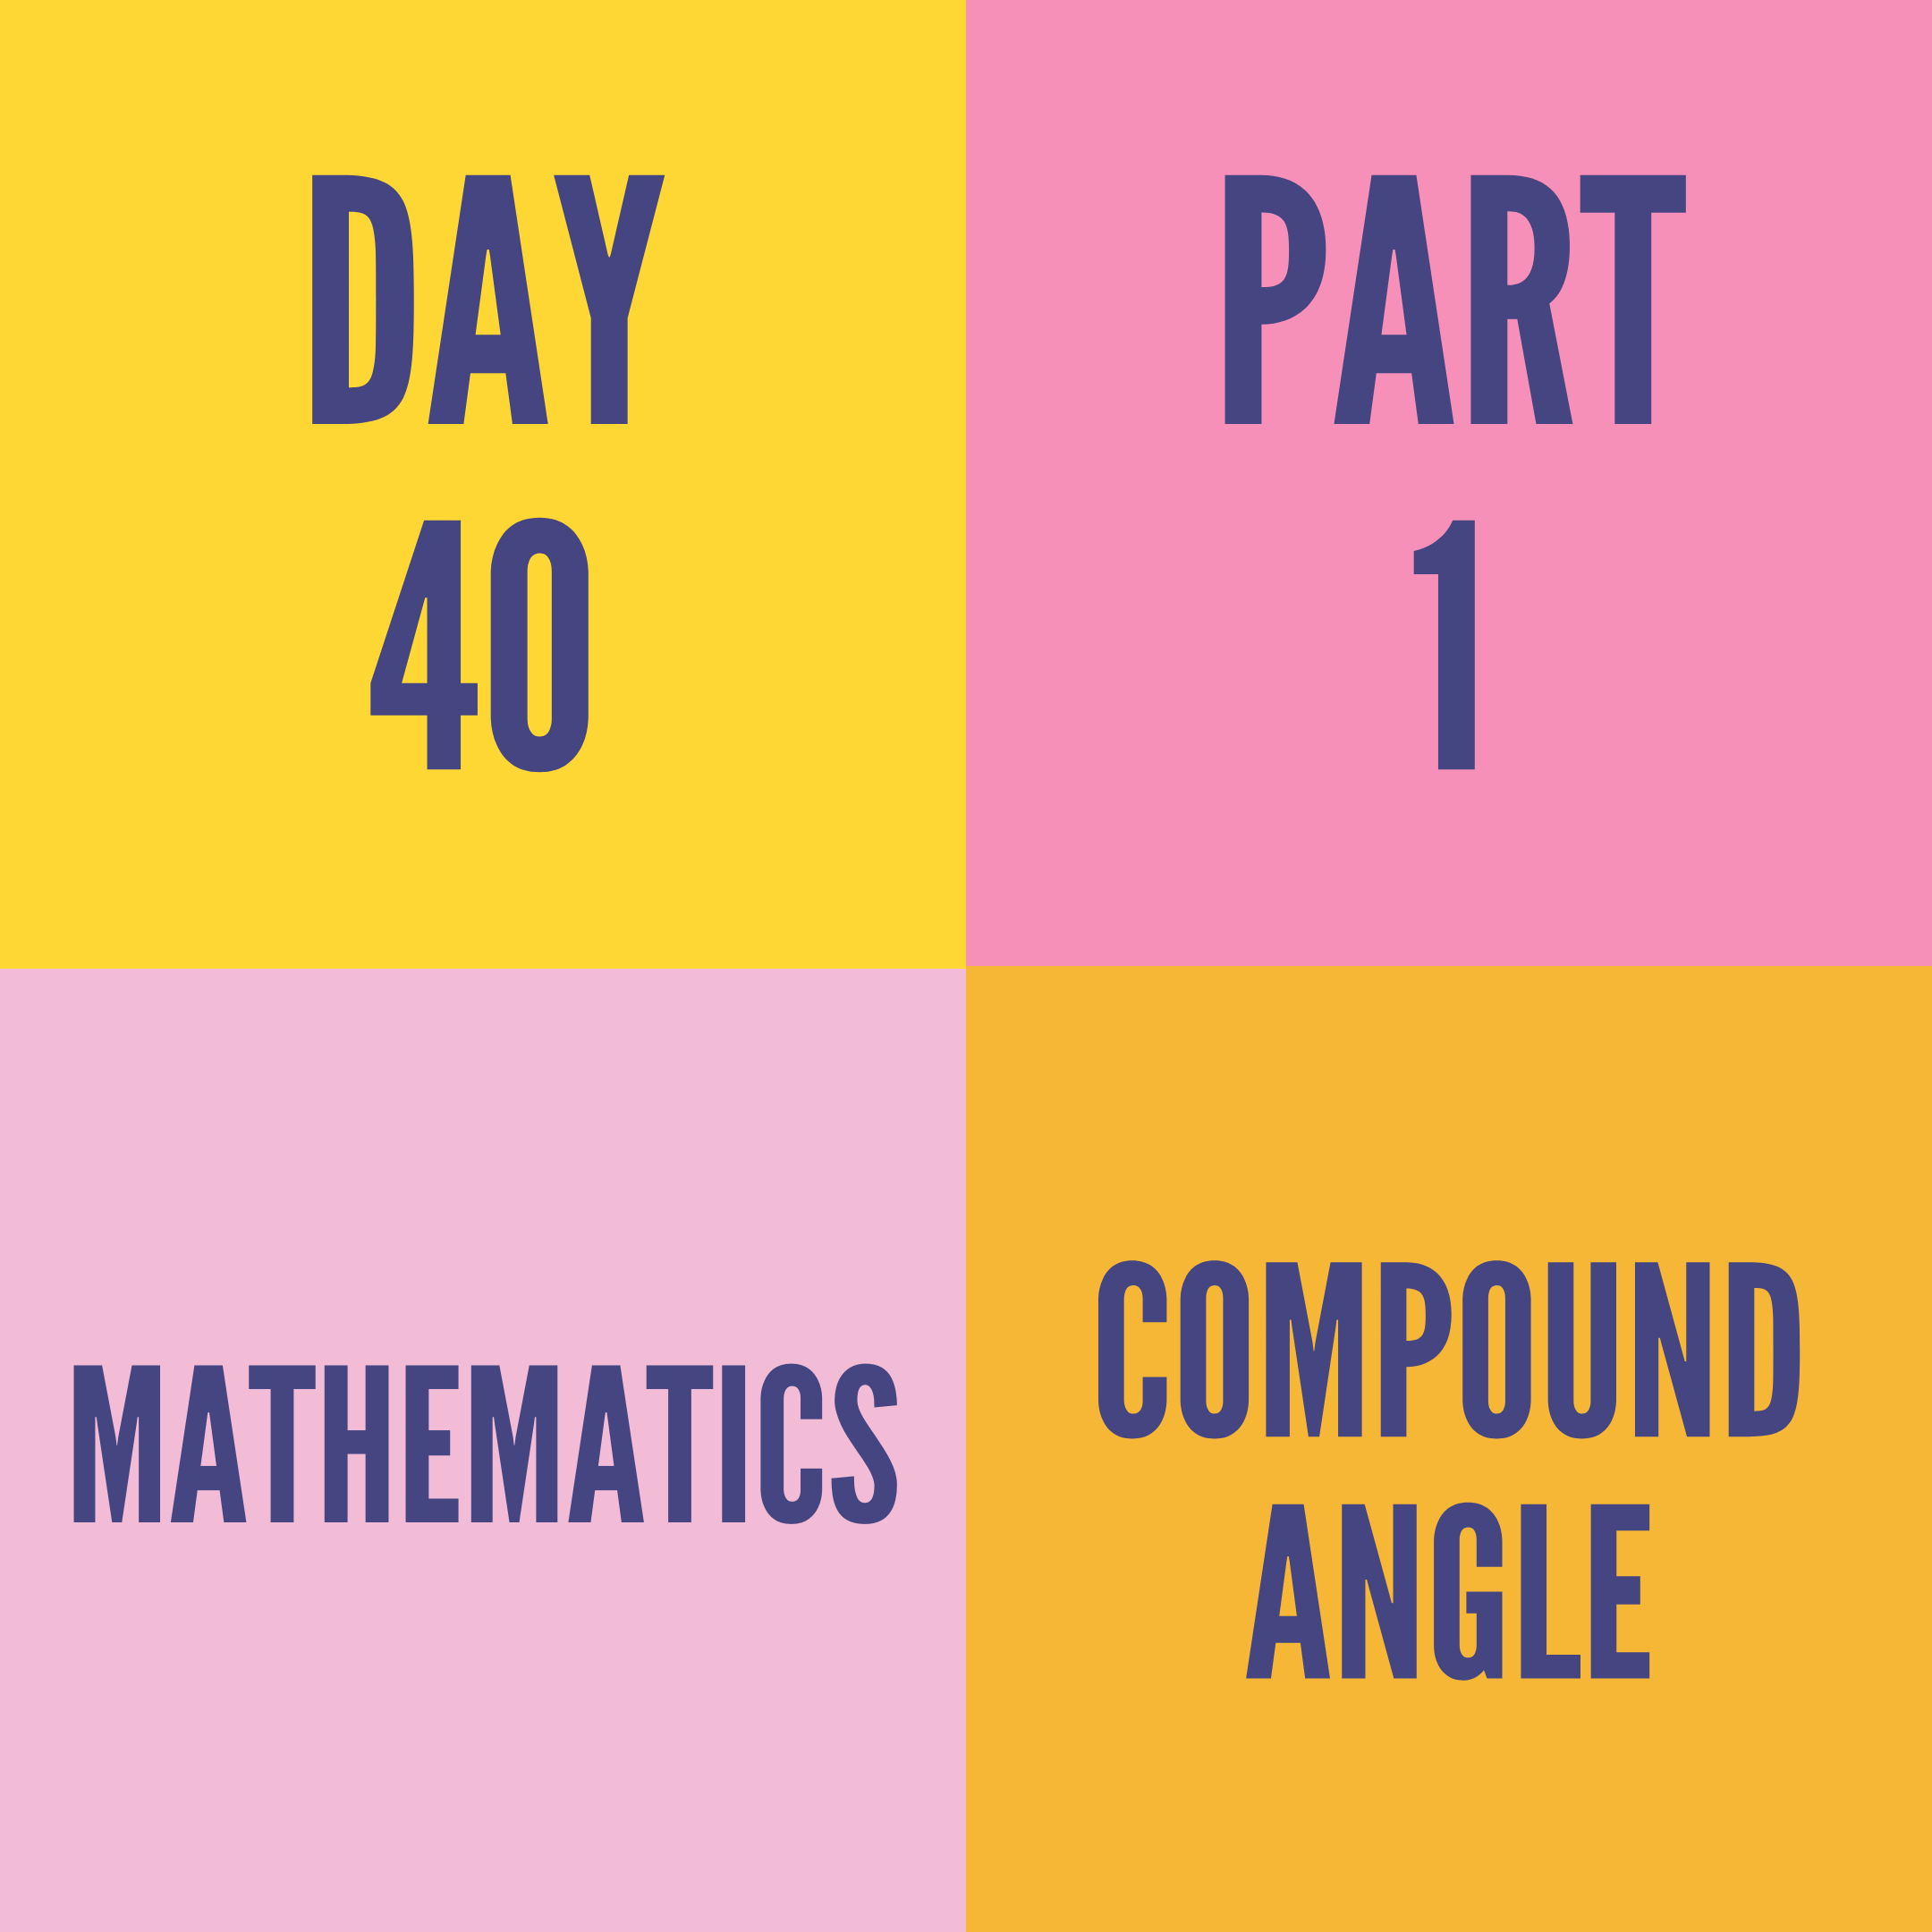 DAY-40 PART-1 COMPOUND ANGLE